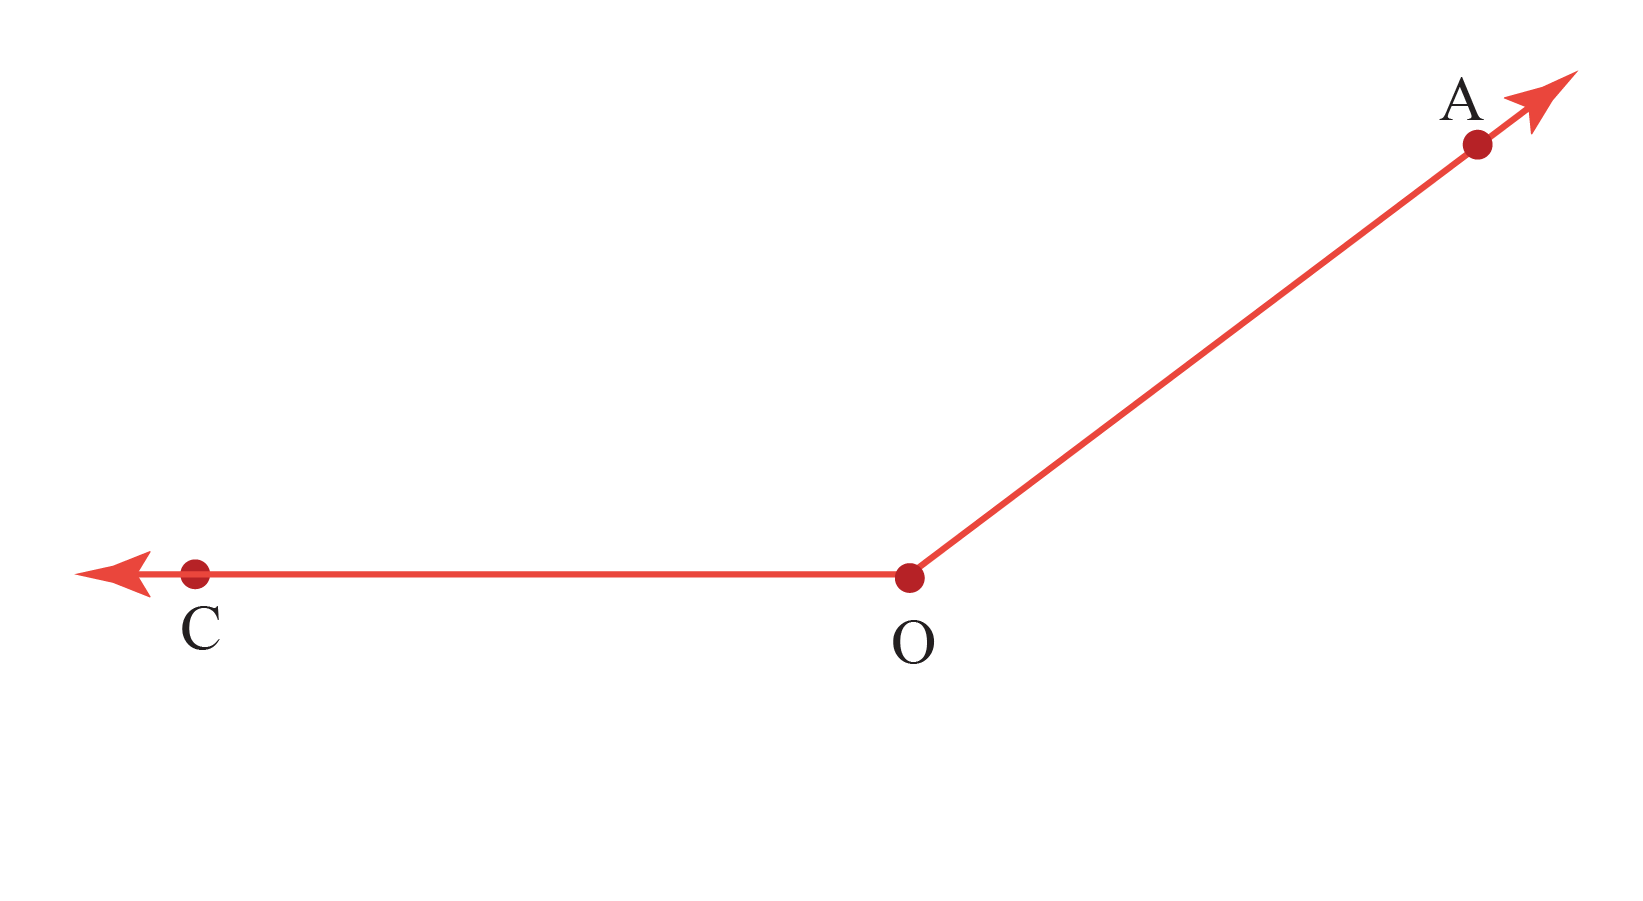 steps to measure the angle of a given example of angle AOC using a protractor